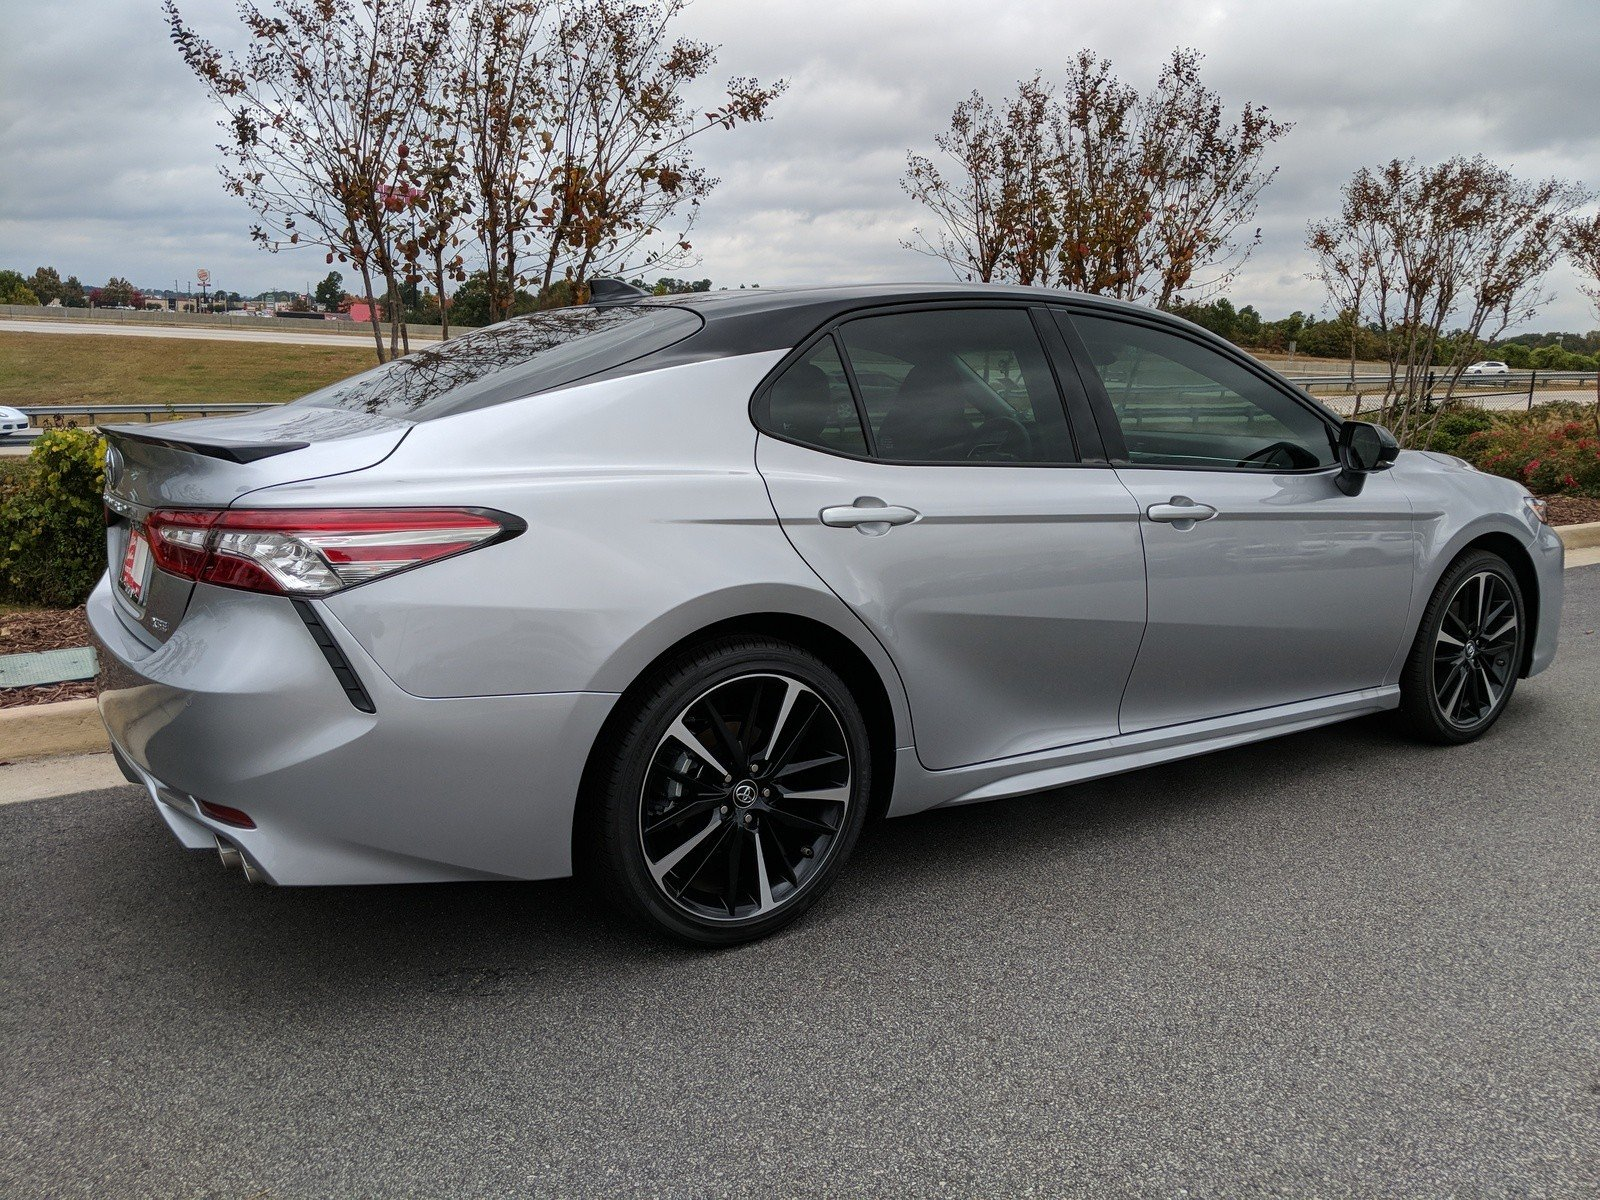 New 2018 Toyota Camry XSE 4dr Car in Gainesville